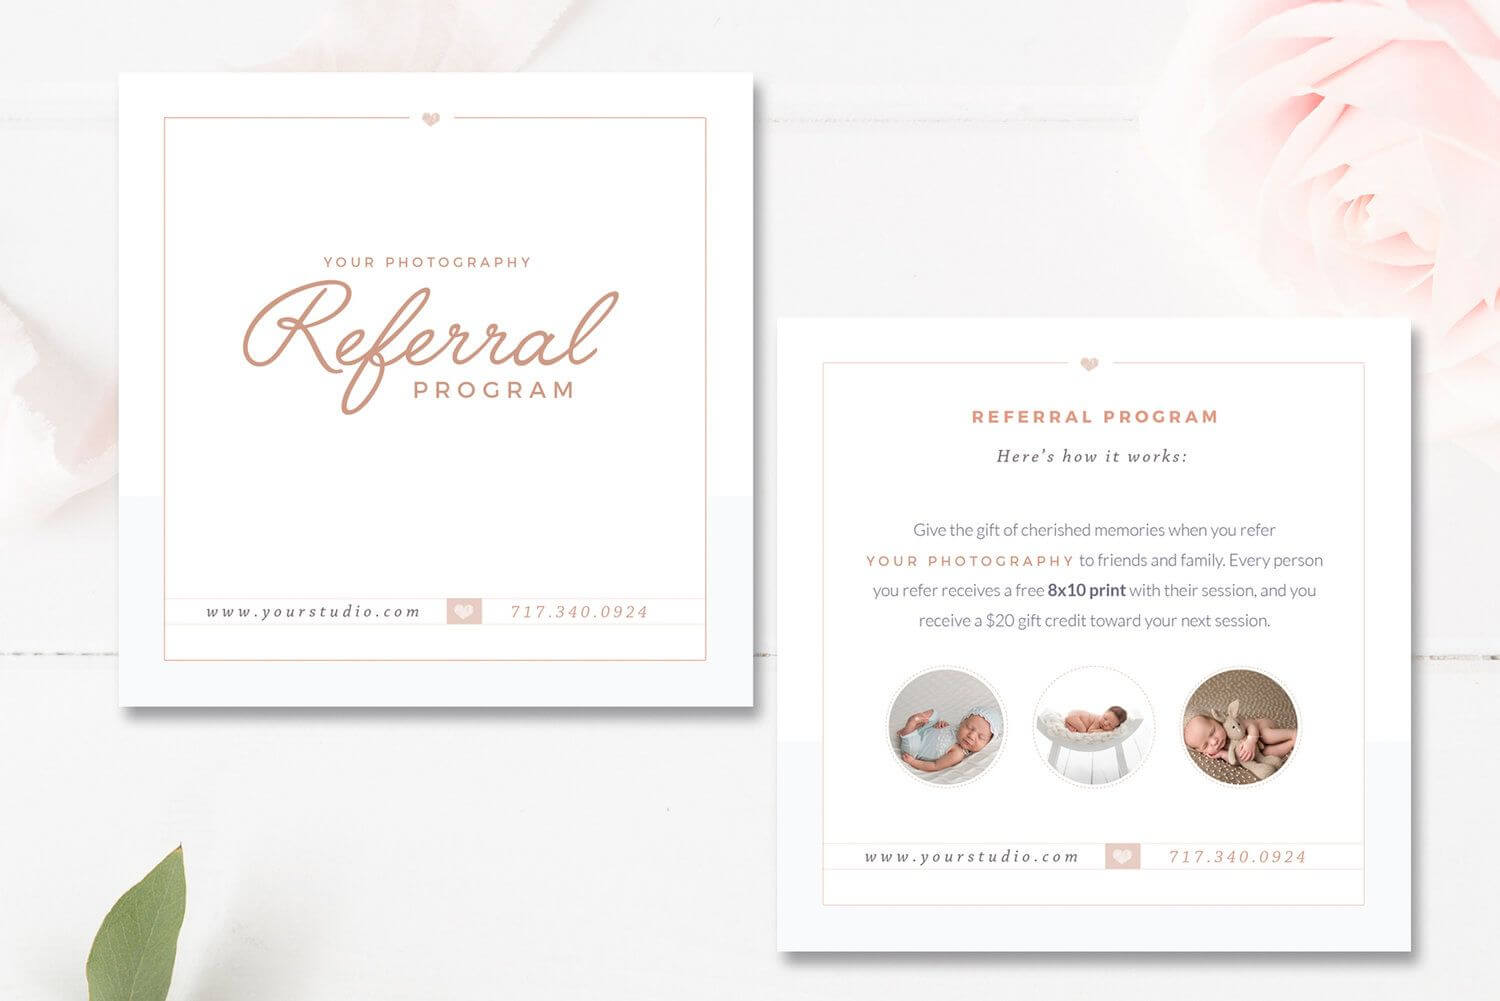 Photography Referral Card Templates, Referral Program intended for Referral Card Template